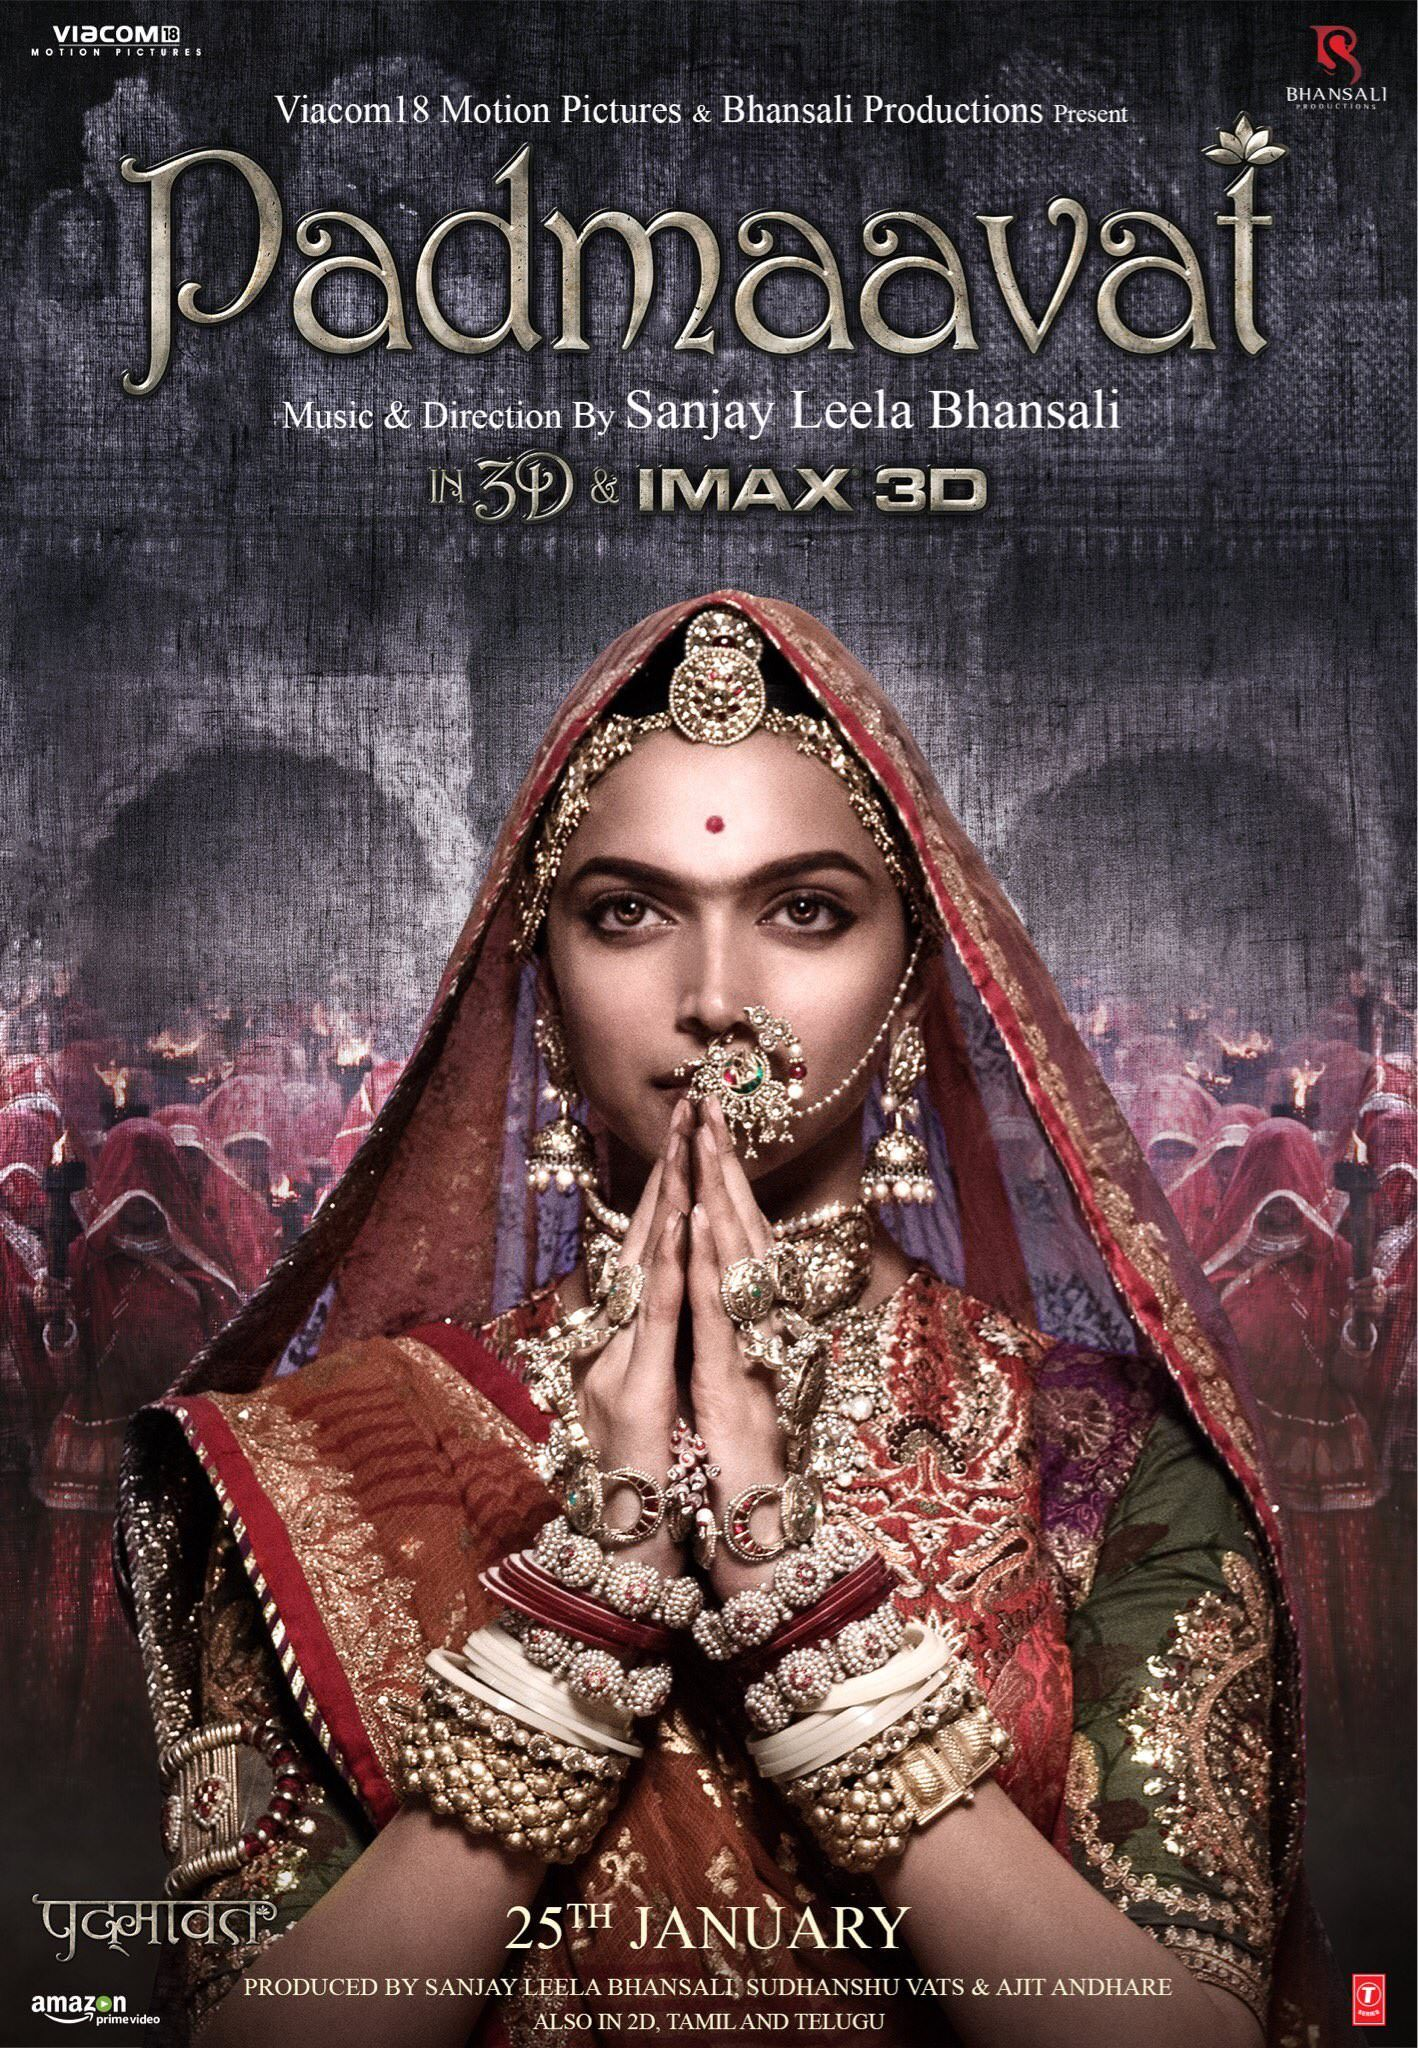 Padmaavat 2018 Tamil Dubbed Movie Free Download Full Hd Bluray